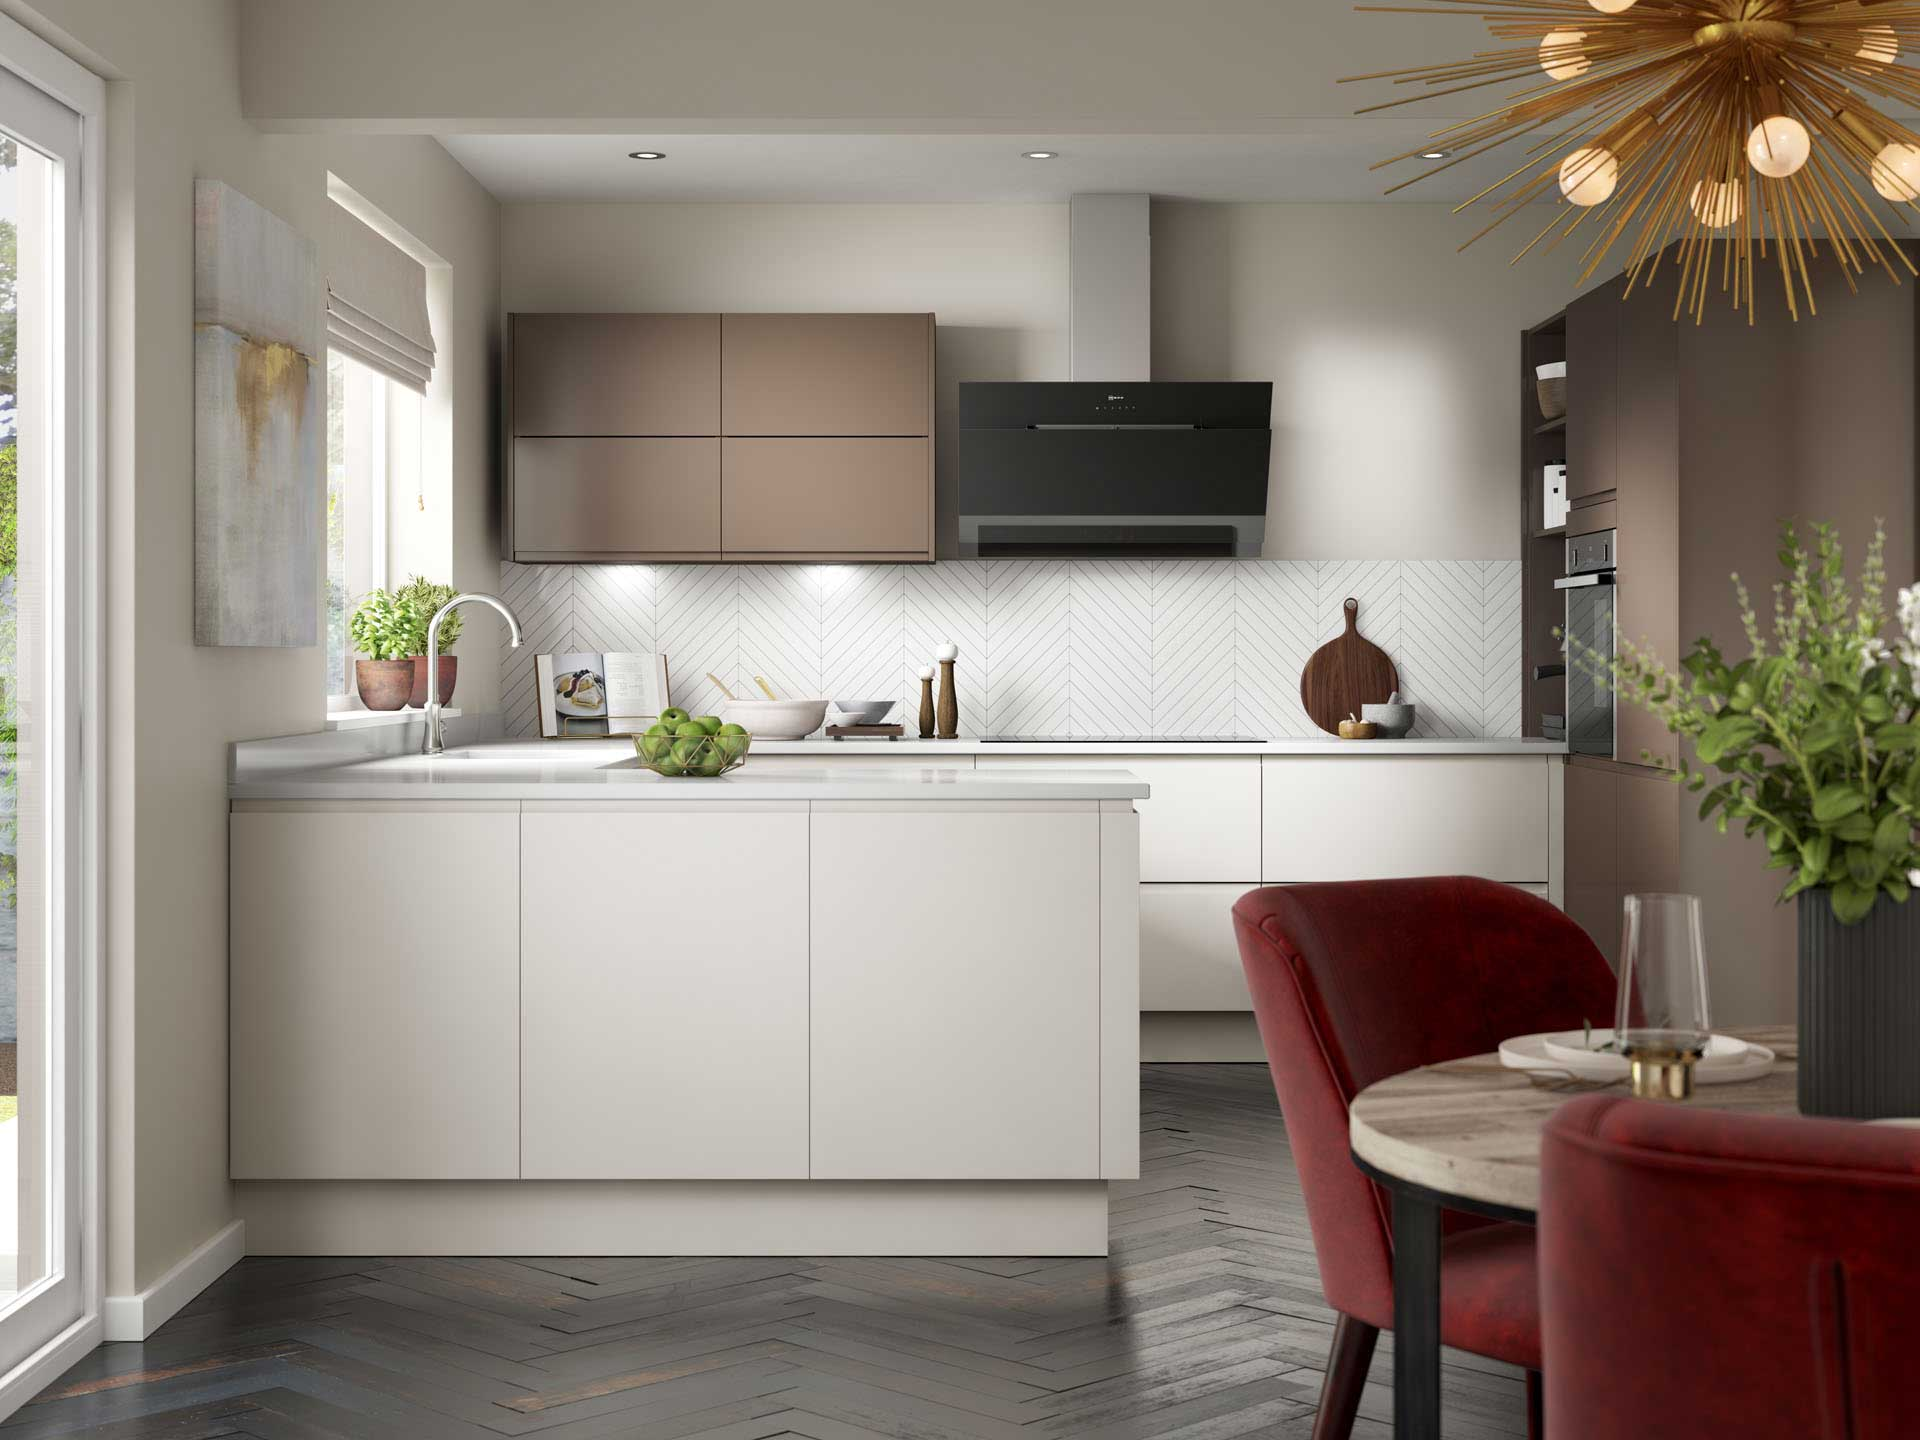 Fitted Kitchens, New Fully Fitted Kitchen Units UK, Design